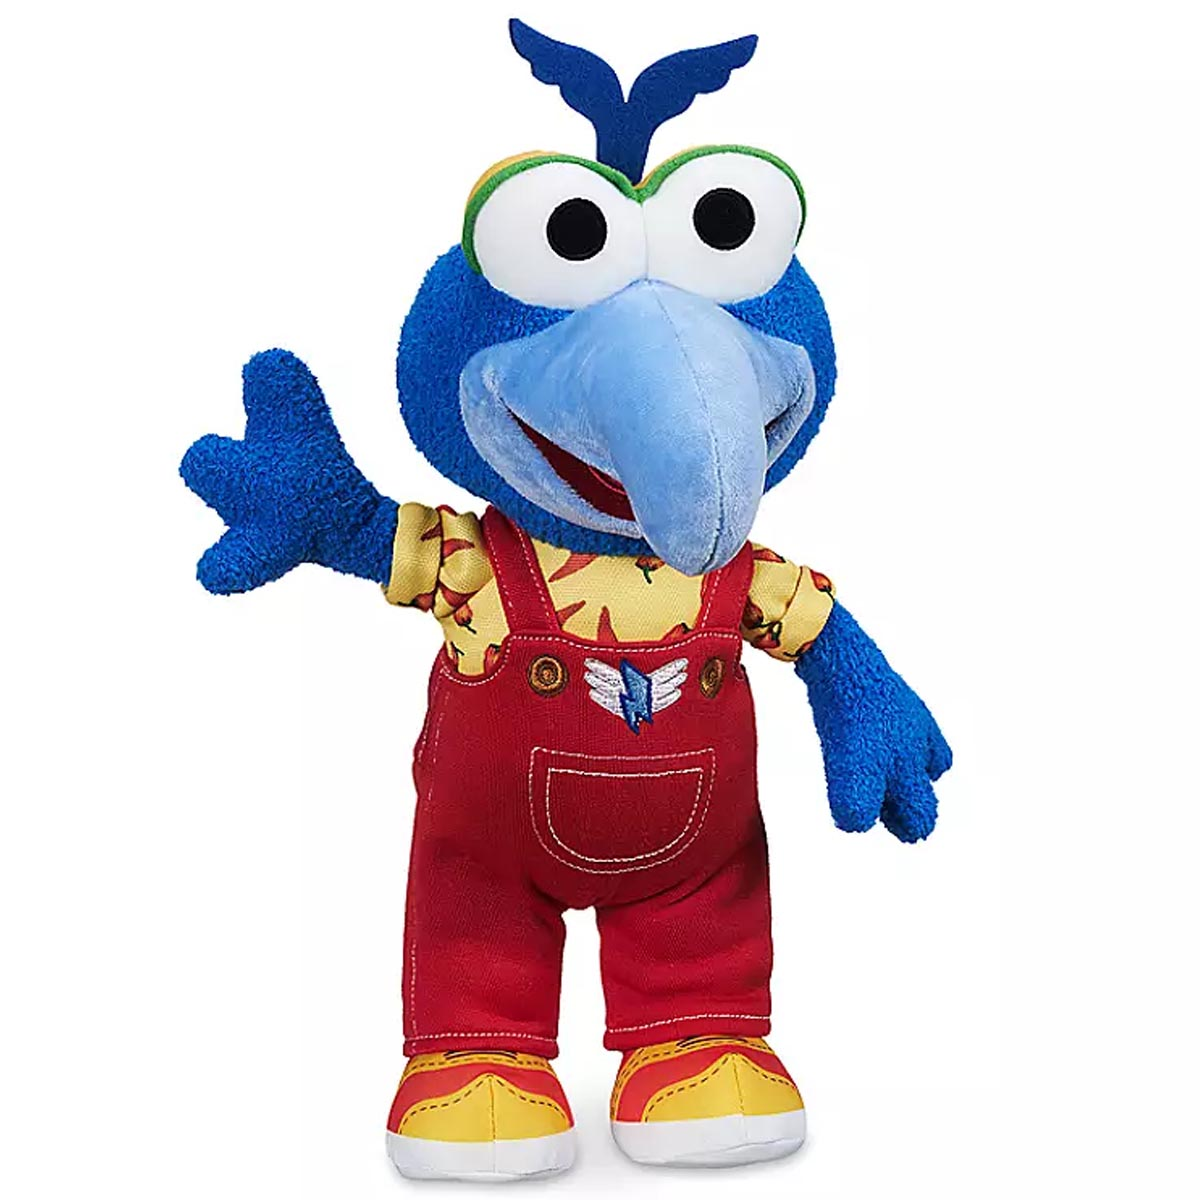 The Muppet Babies Small Gonzo Plush Genuine Disney